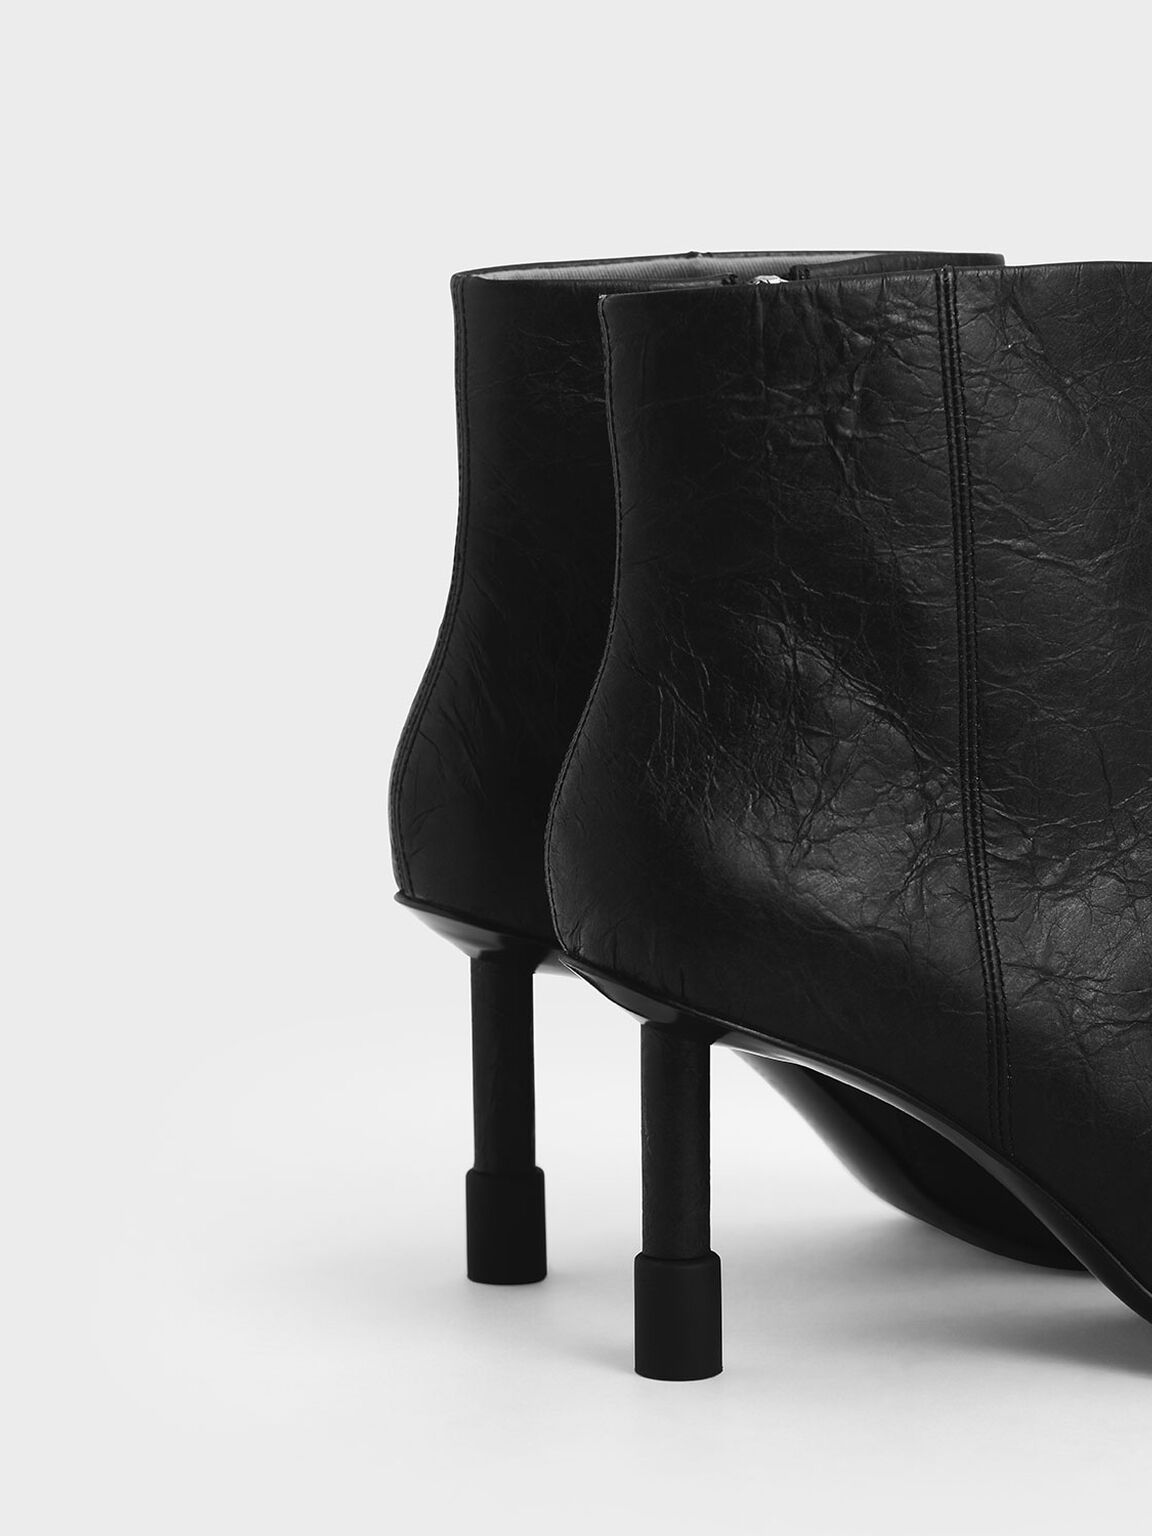 Stiletto Heel Ankle Boots, Black, hi-res